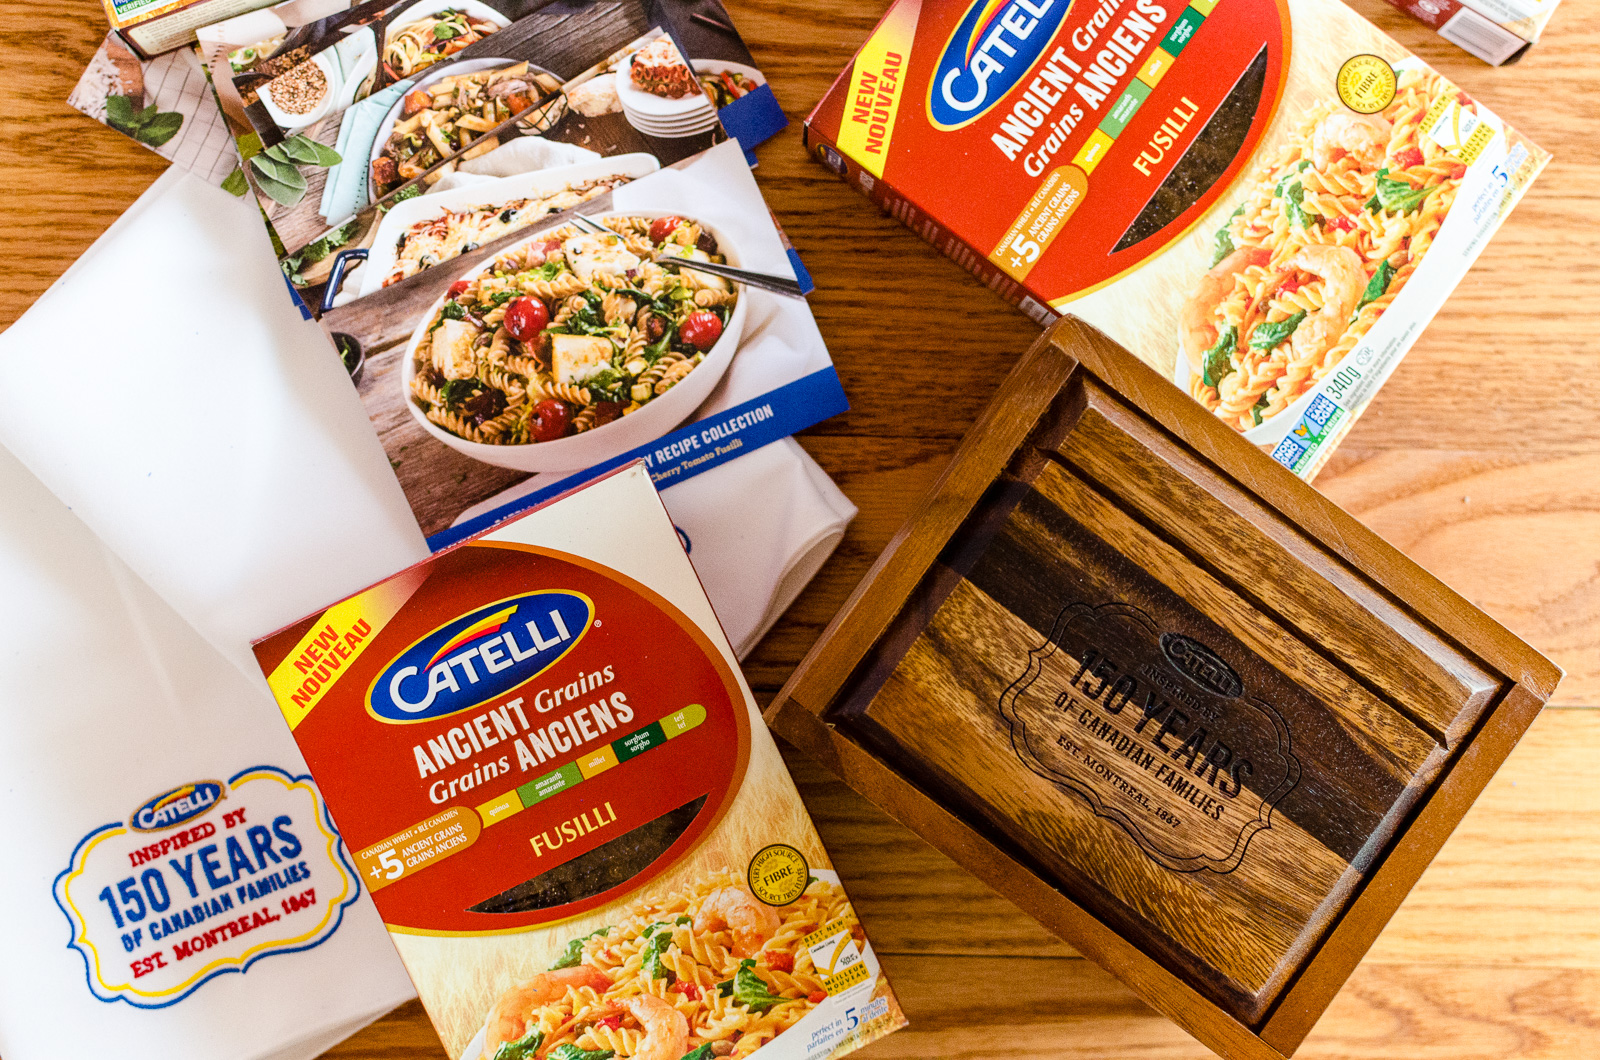 Catelli pasta 150th anniversary recipe collection hello vancity this year catelli pasta and canada turn 150 years together canadian families have evolved the definition of family has changed forumfinder Gallery